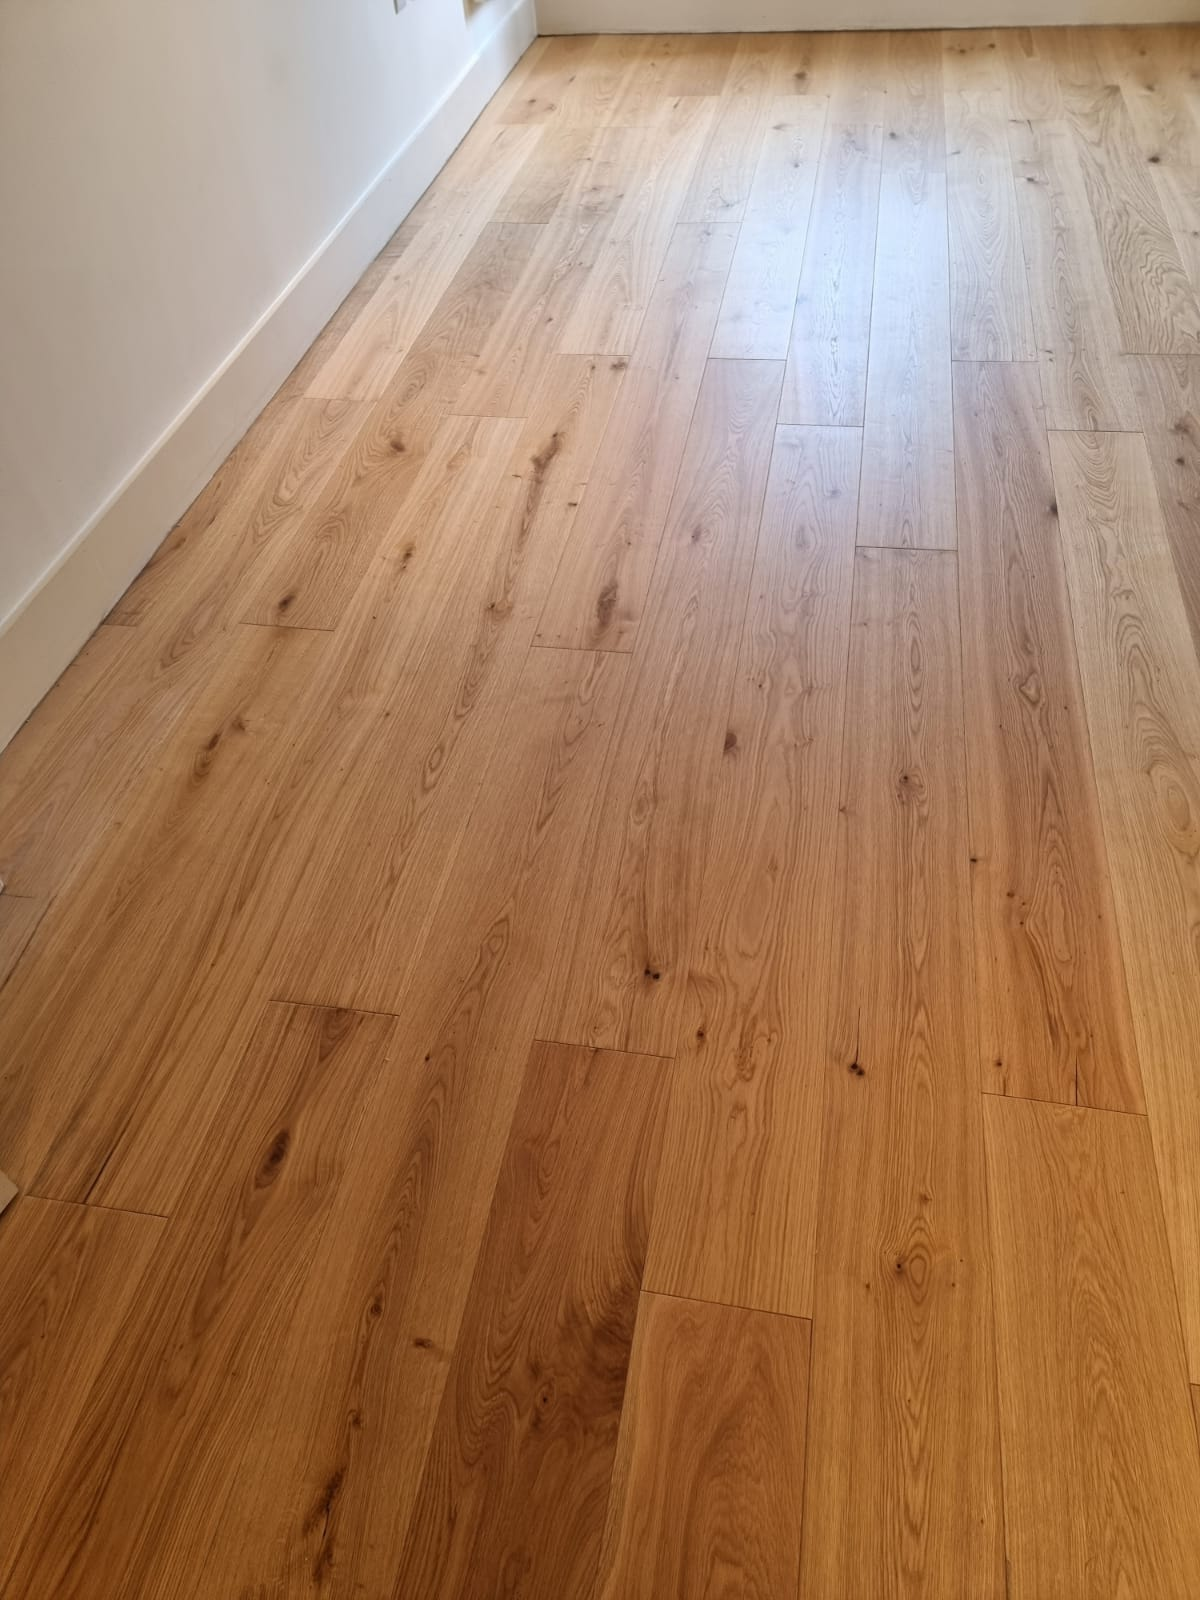 Xylo R22 Wood Flooring in Docklands 1